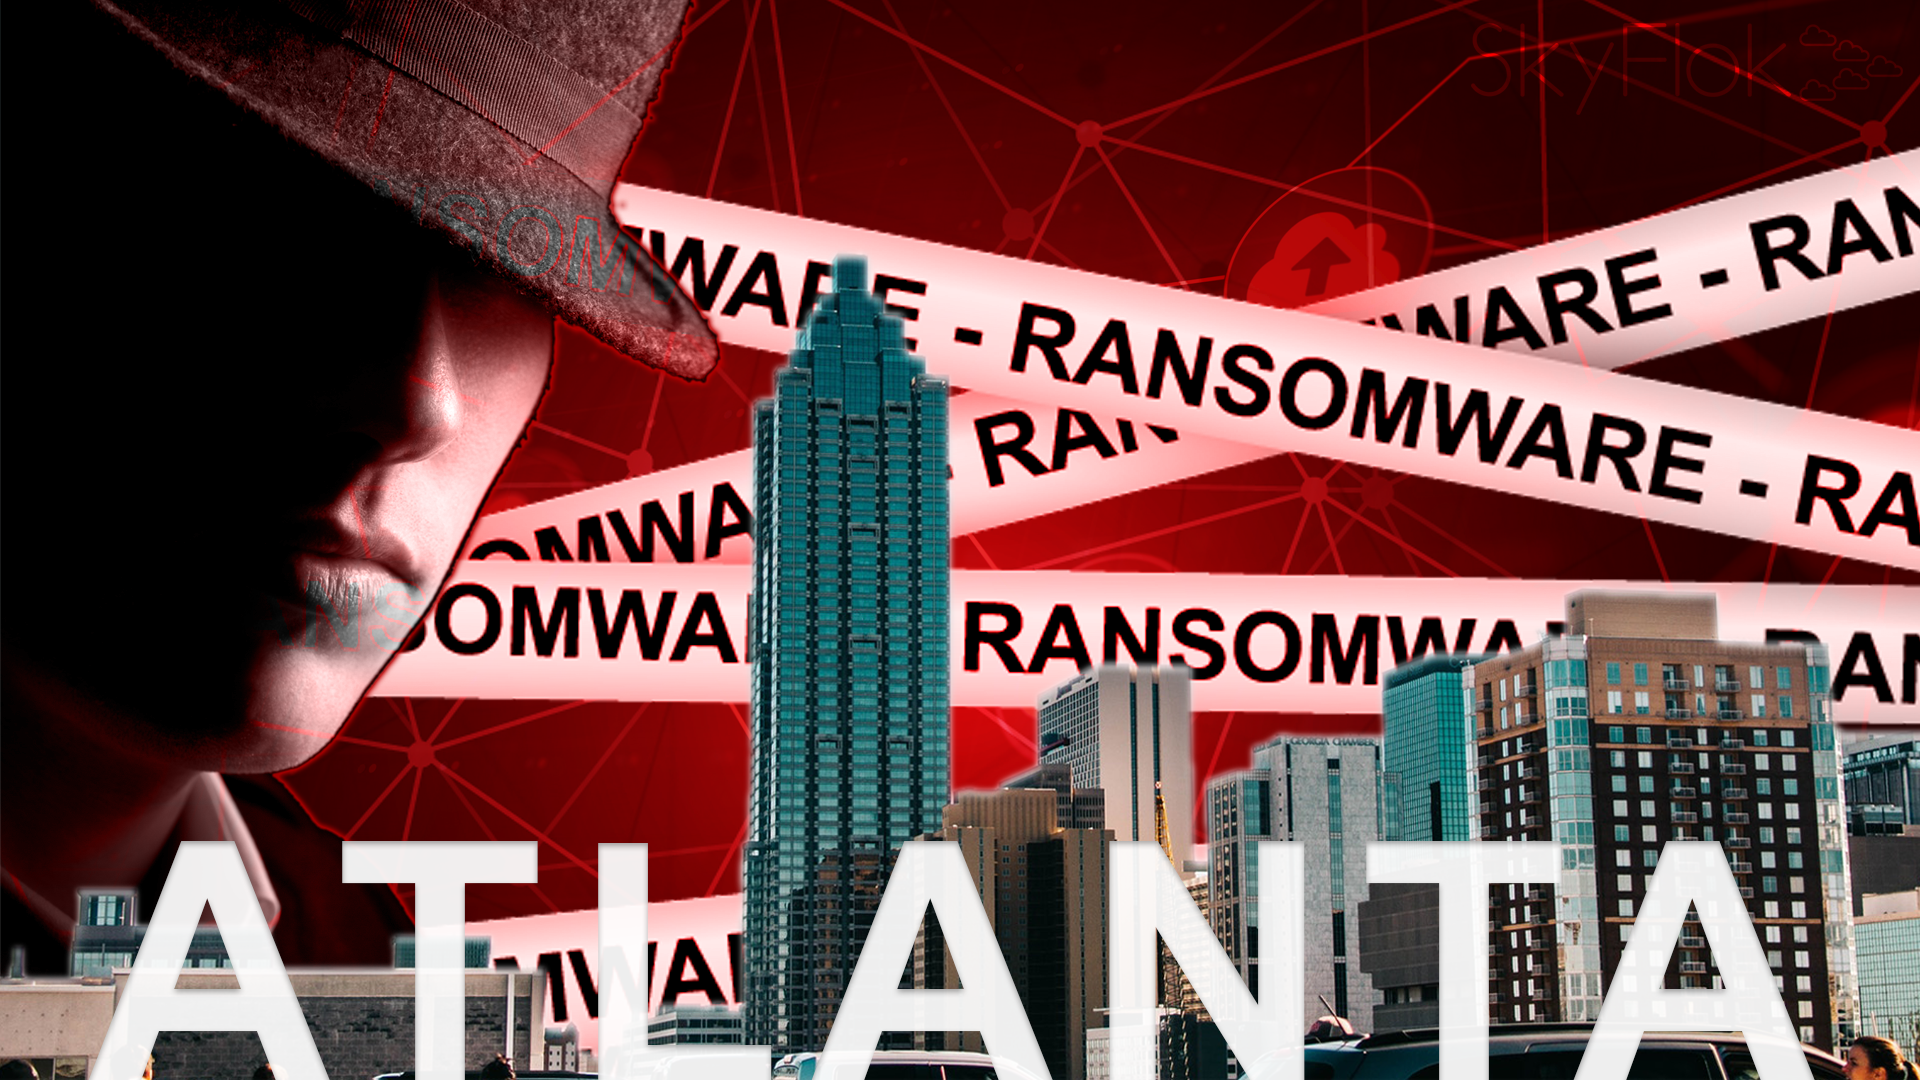 The FBI is investigating a ransomware attack on the city of Atlanta